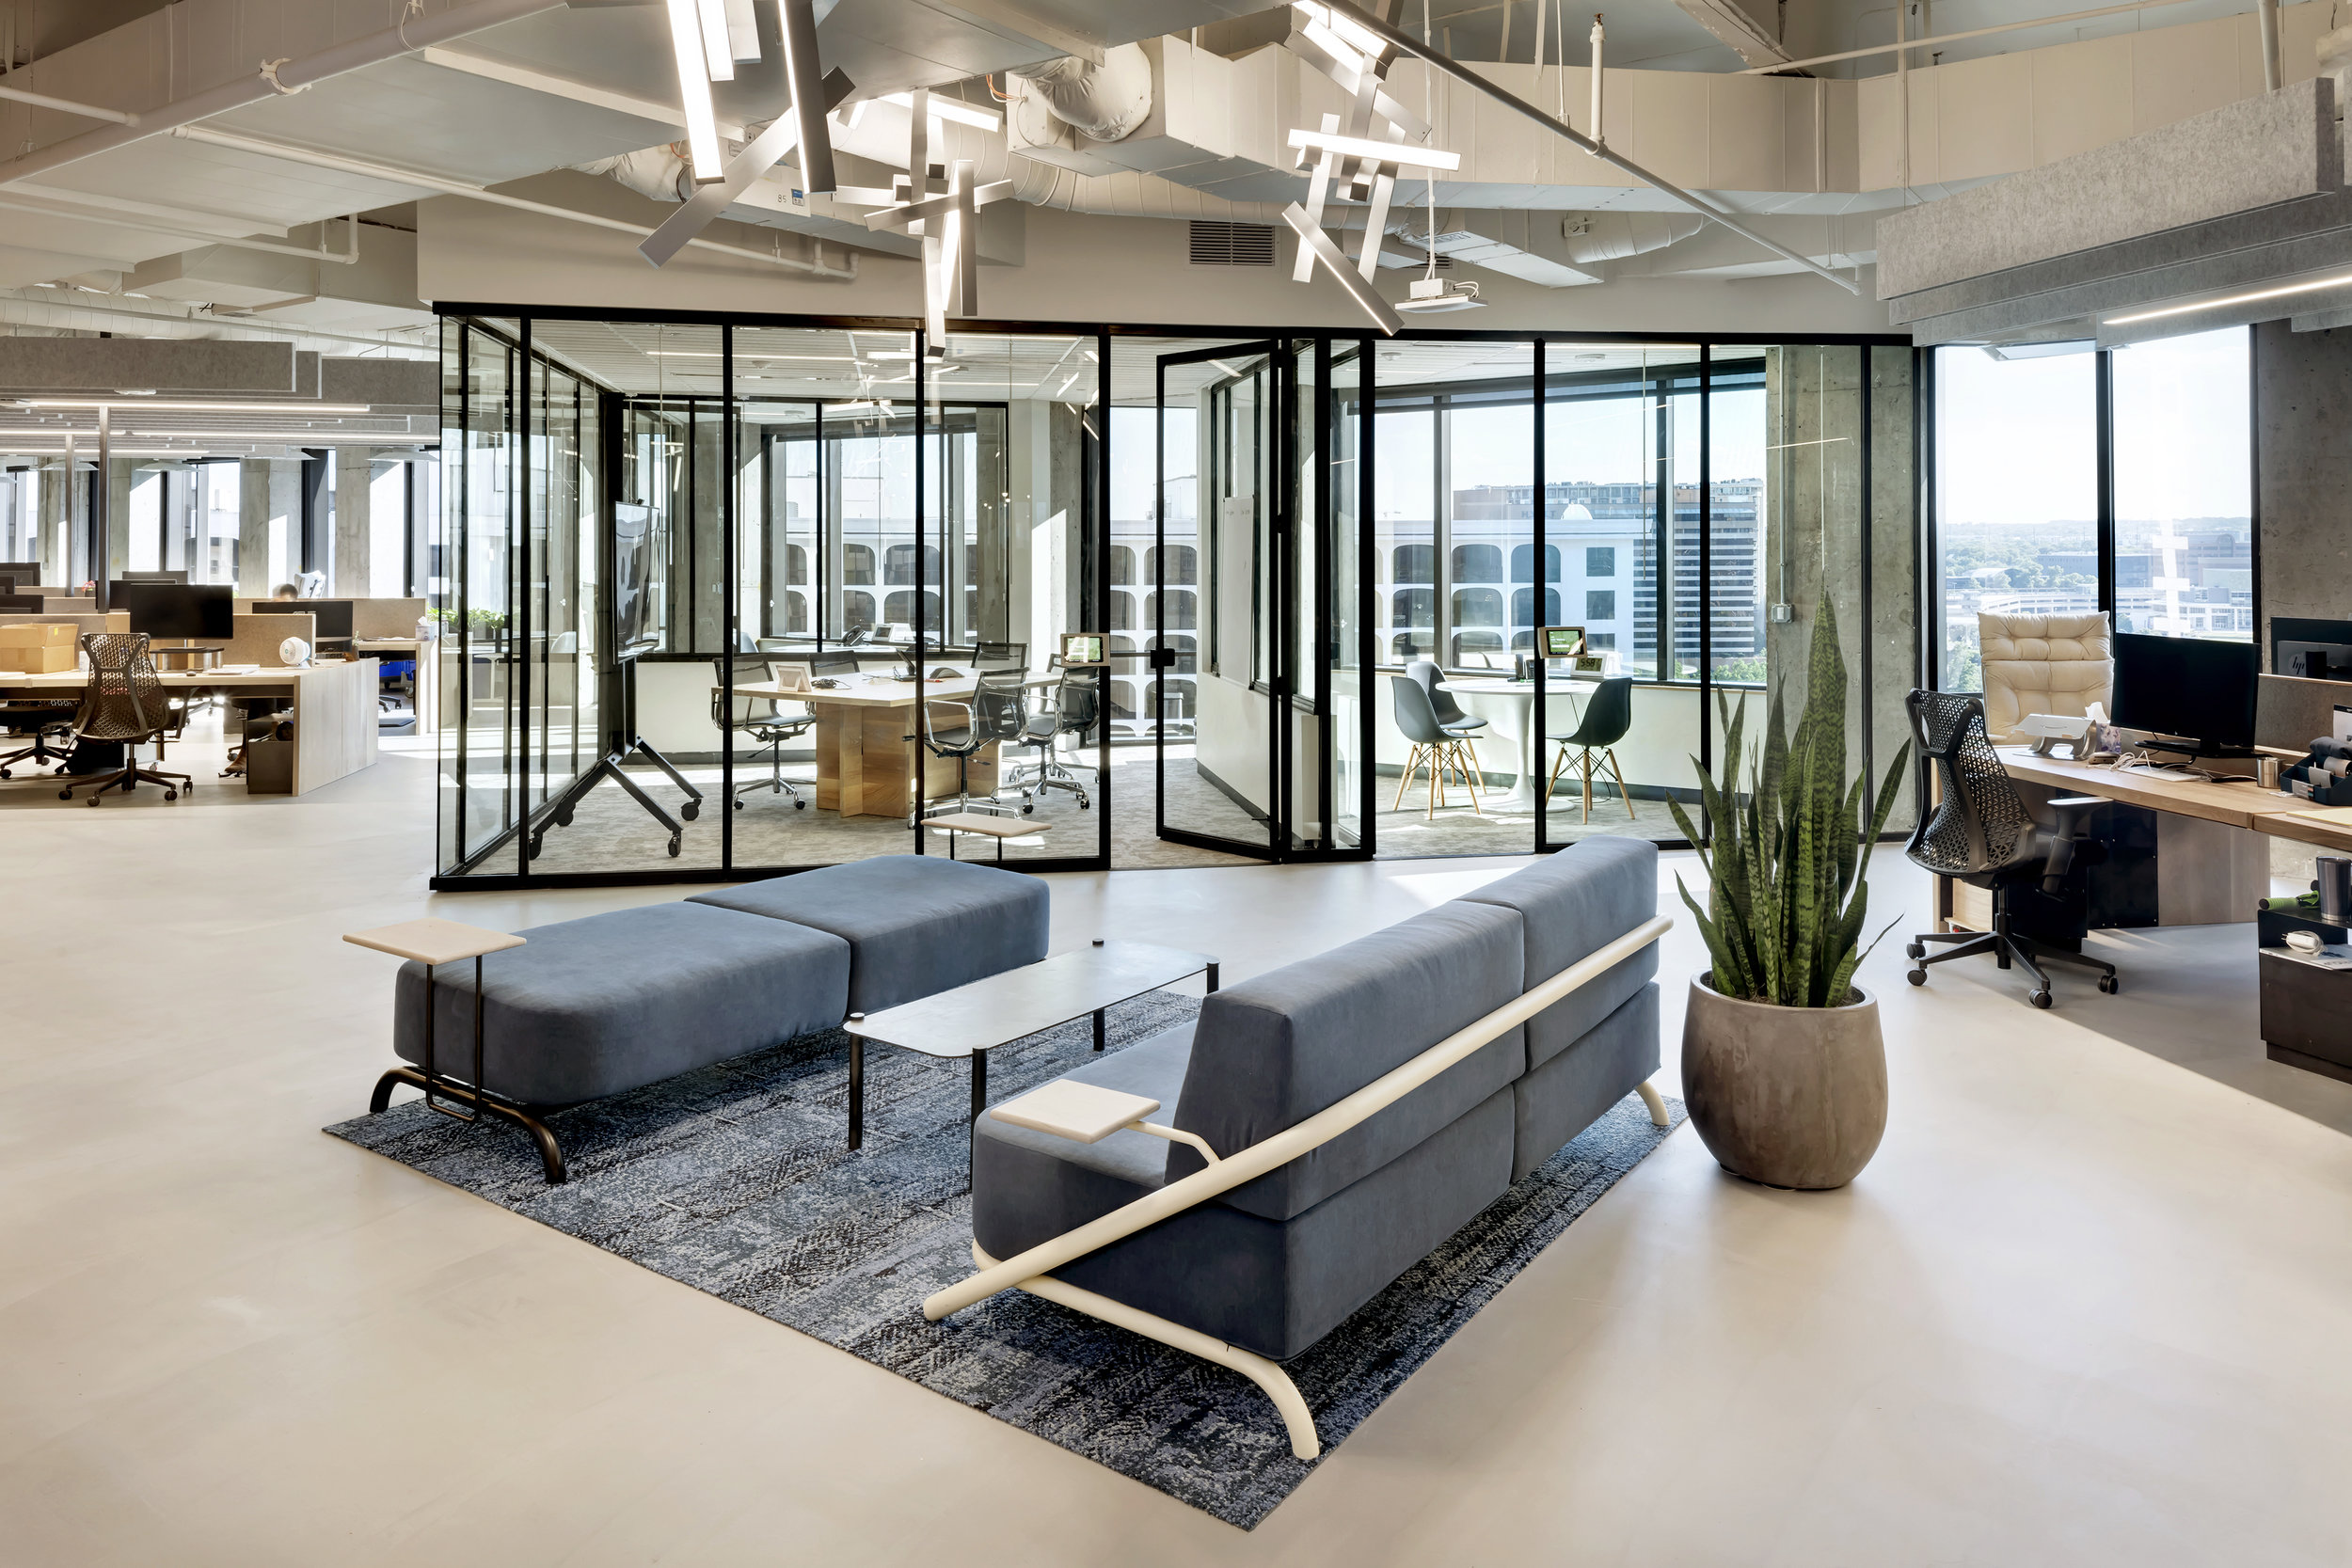 28 RigUp Office by Matt Fajkus Architecture. Photo by Charles Davis Smith.jpg